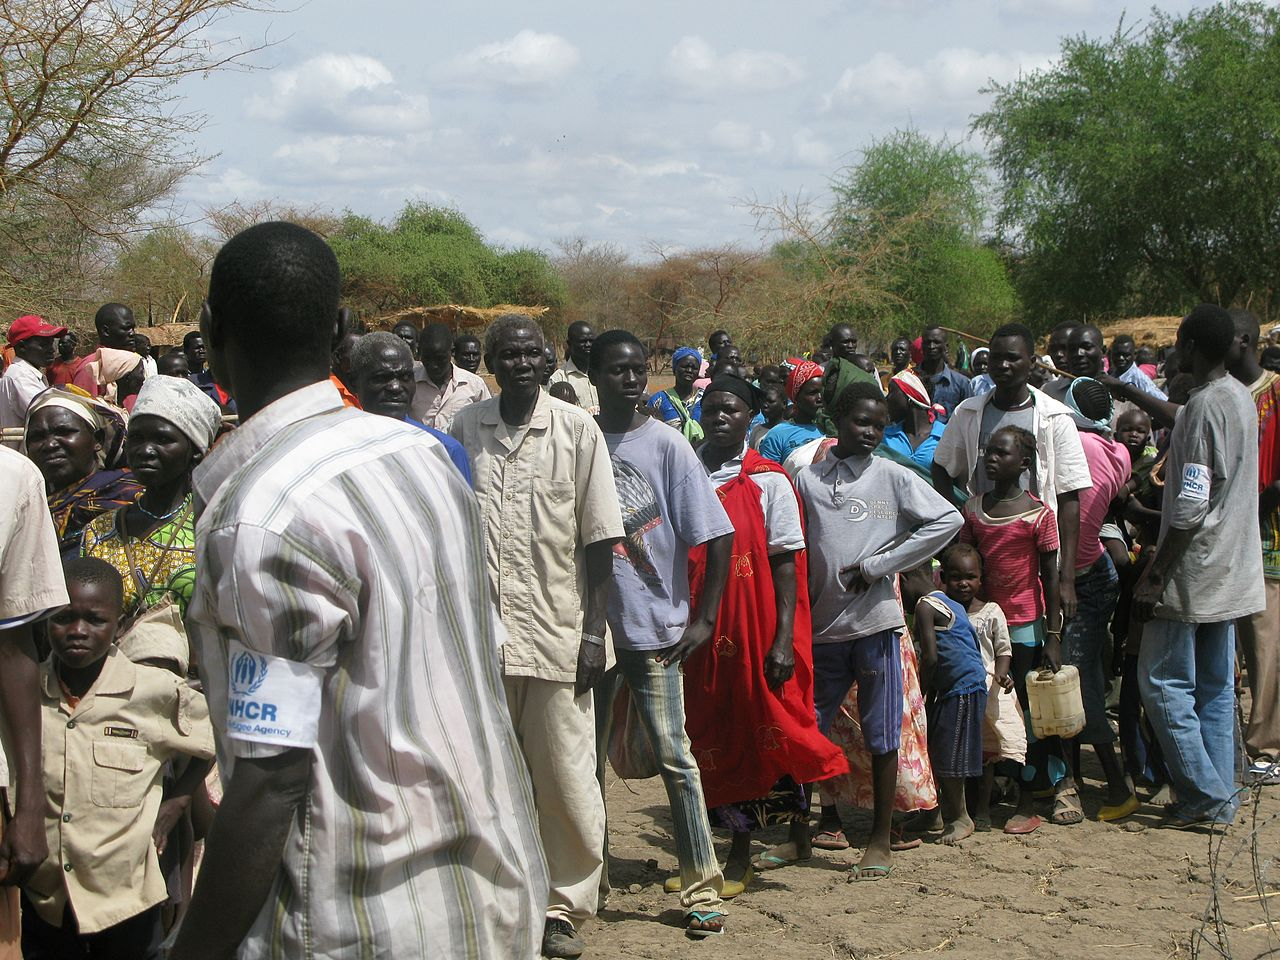 UNHCR staff assist refugees arriving at the Doro camp in South Sudan